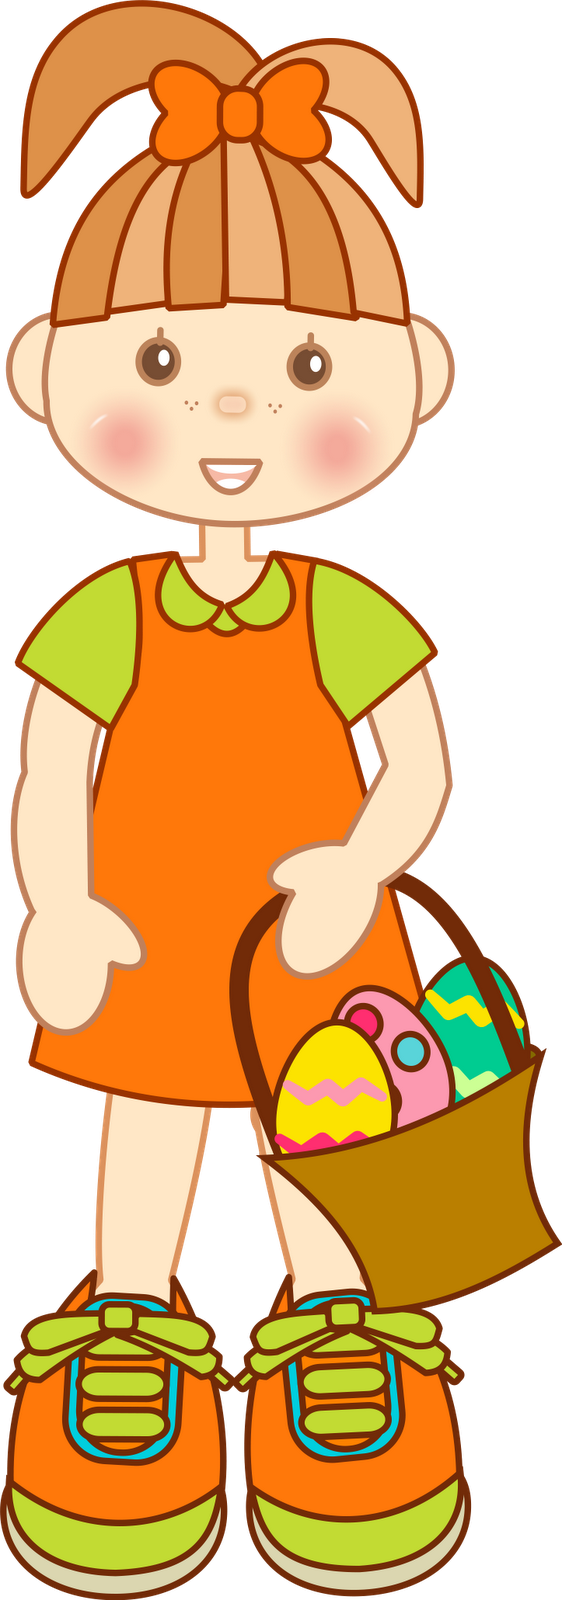 Oh sugarkinaeaster png adorable. Important clipart fascinating